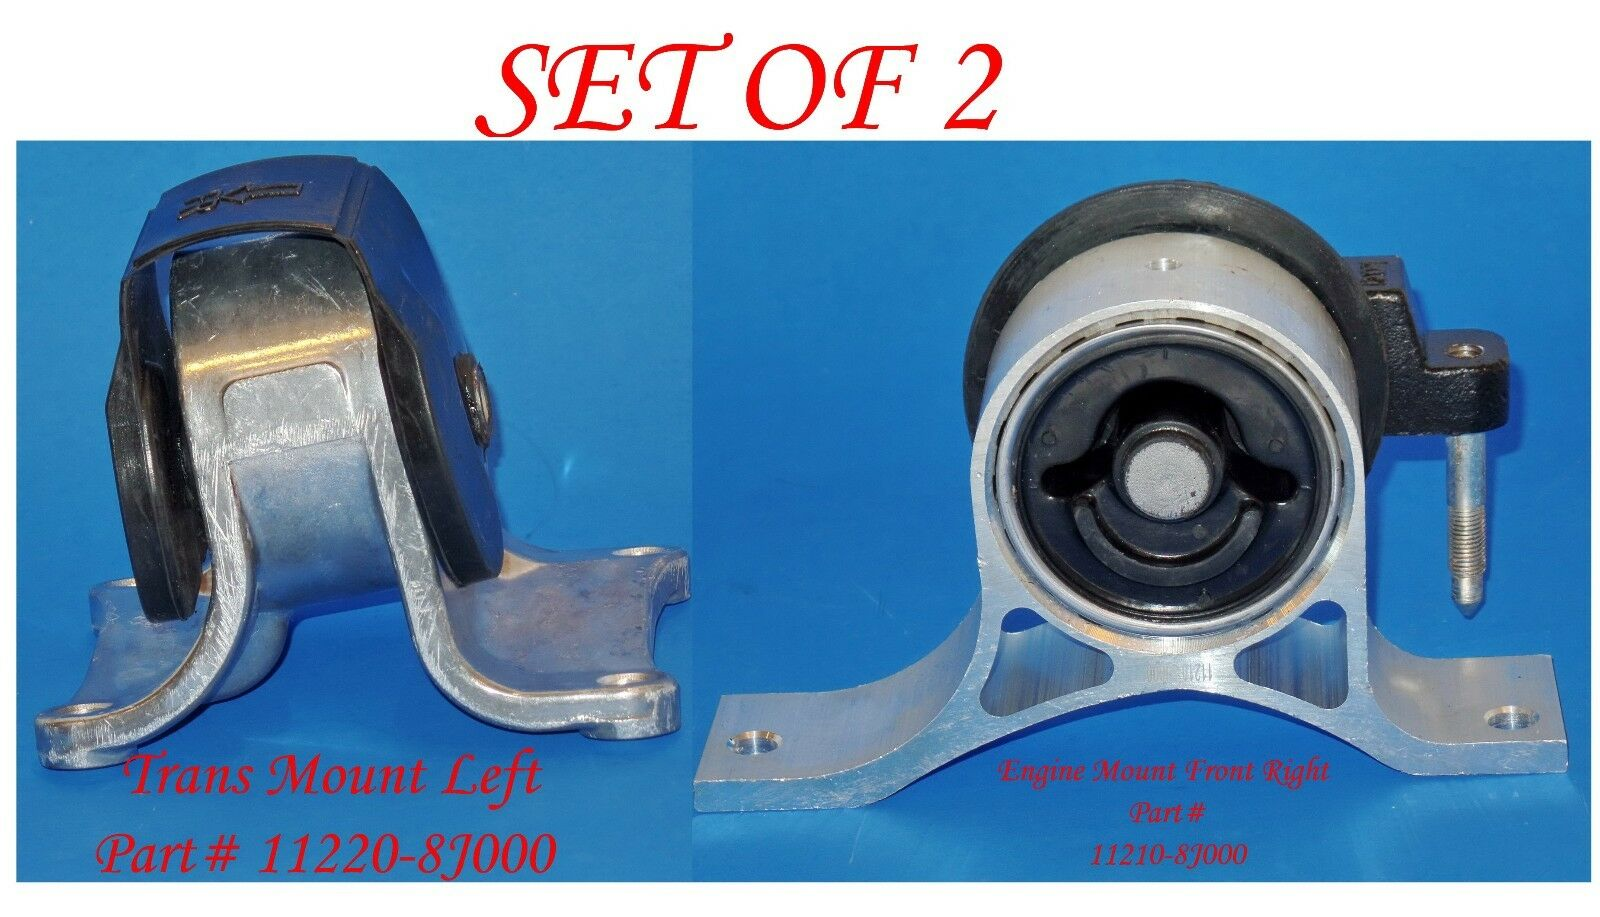 4Pcs Suspension Ball Joint For 1974 Ford Mustang II 2+2